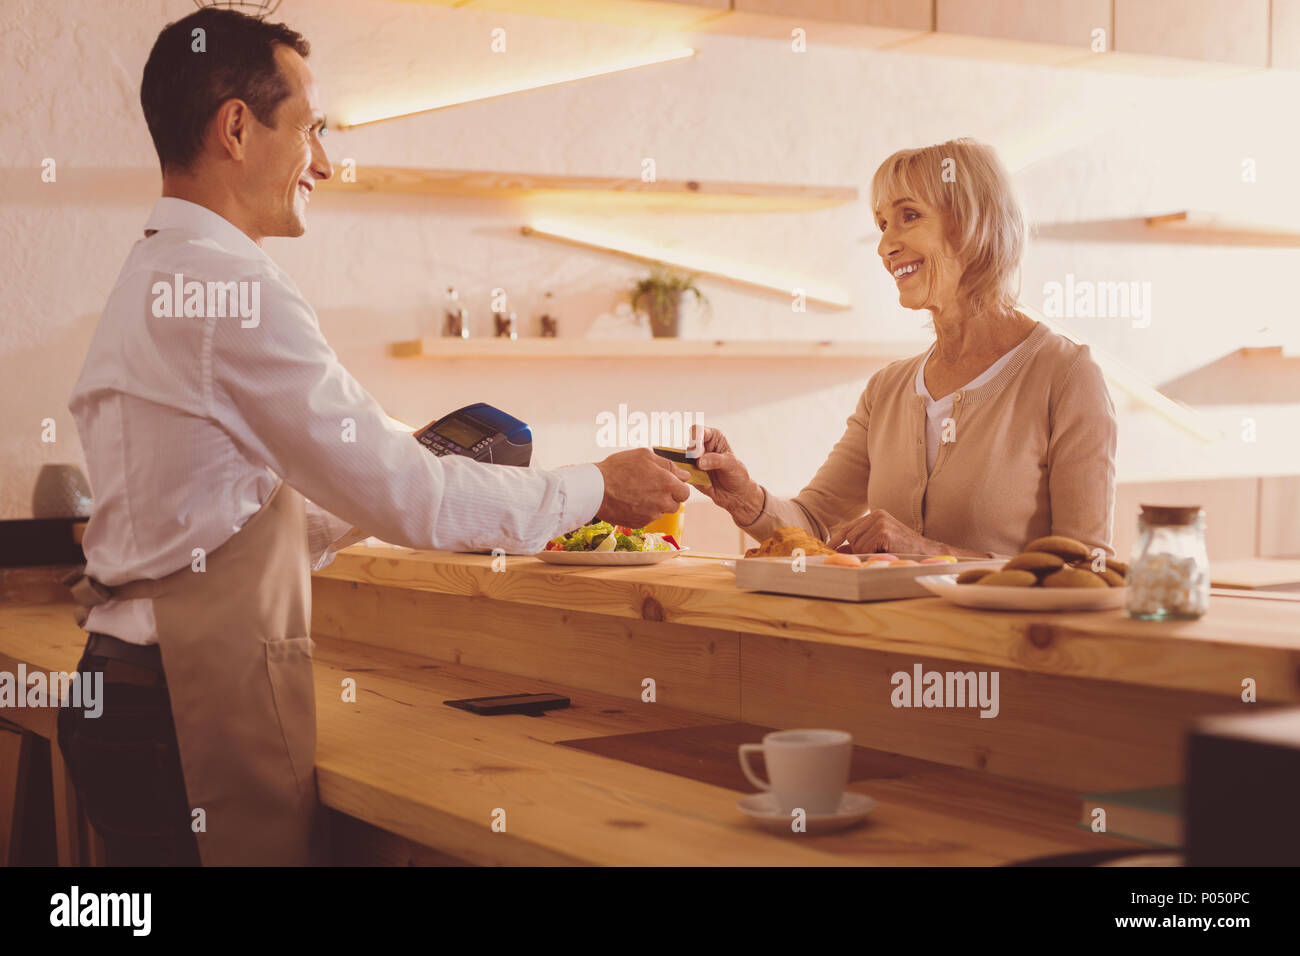 Convenient payment. Pleasant senior woman giving her bank card to the barista, paying for food ordered in cafe, while smiling at him charmingly - Stock Image